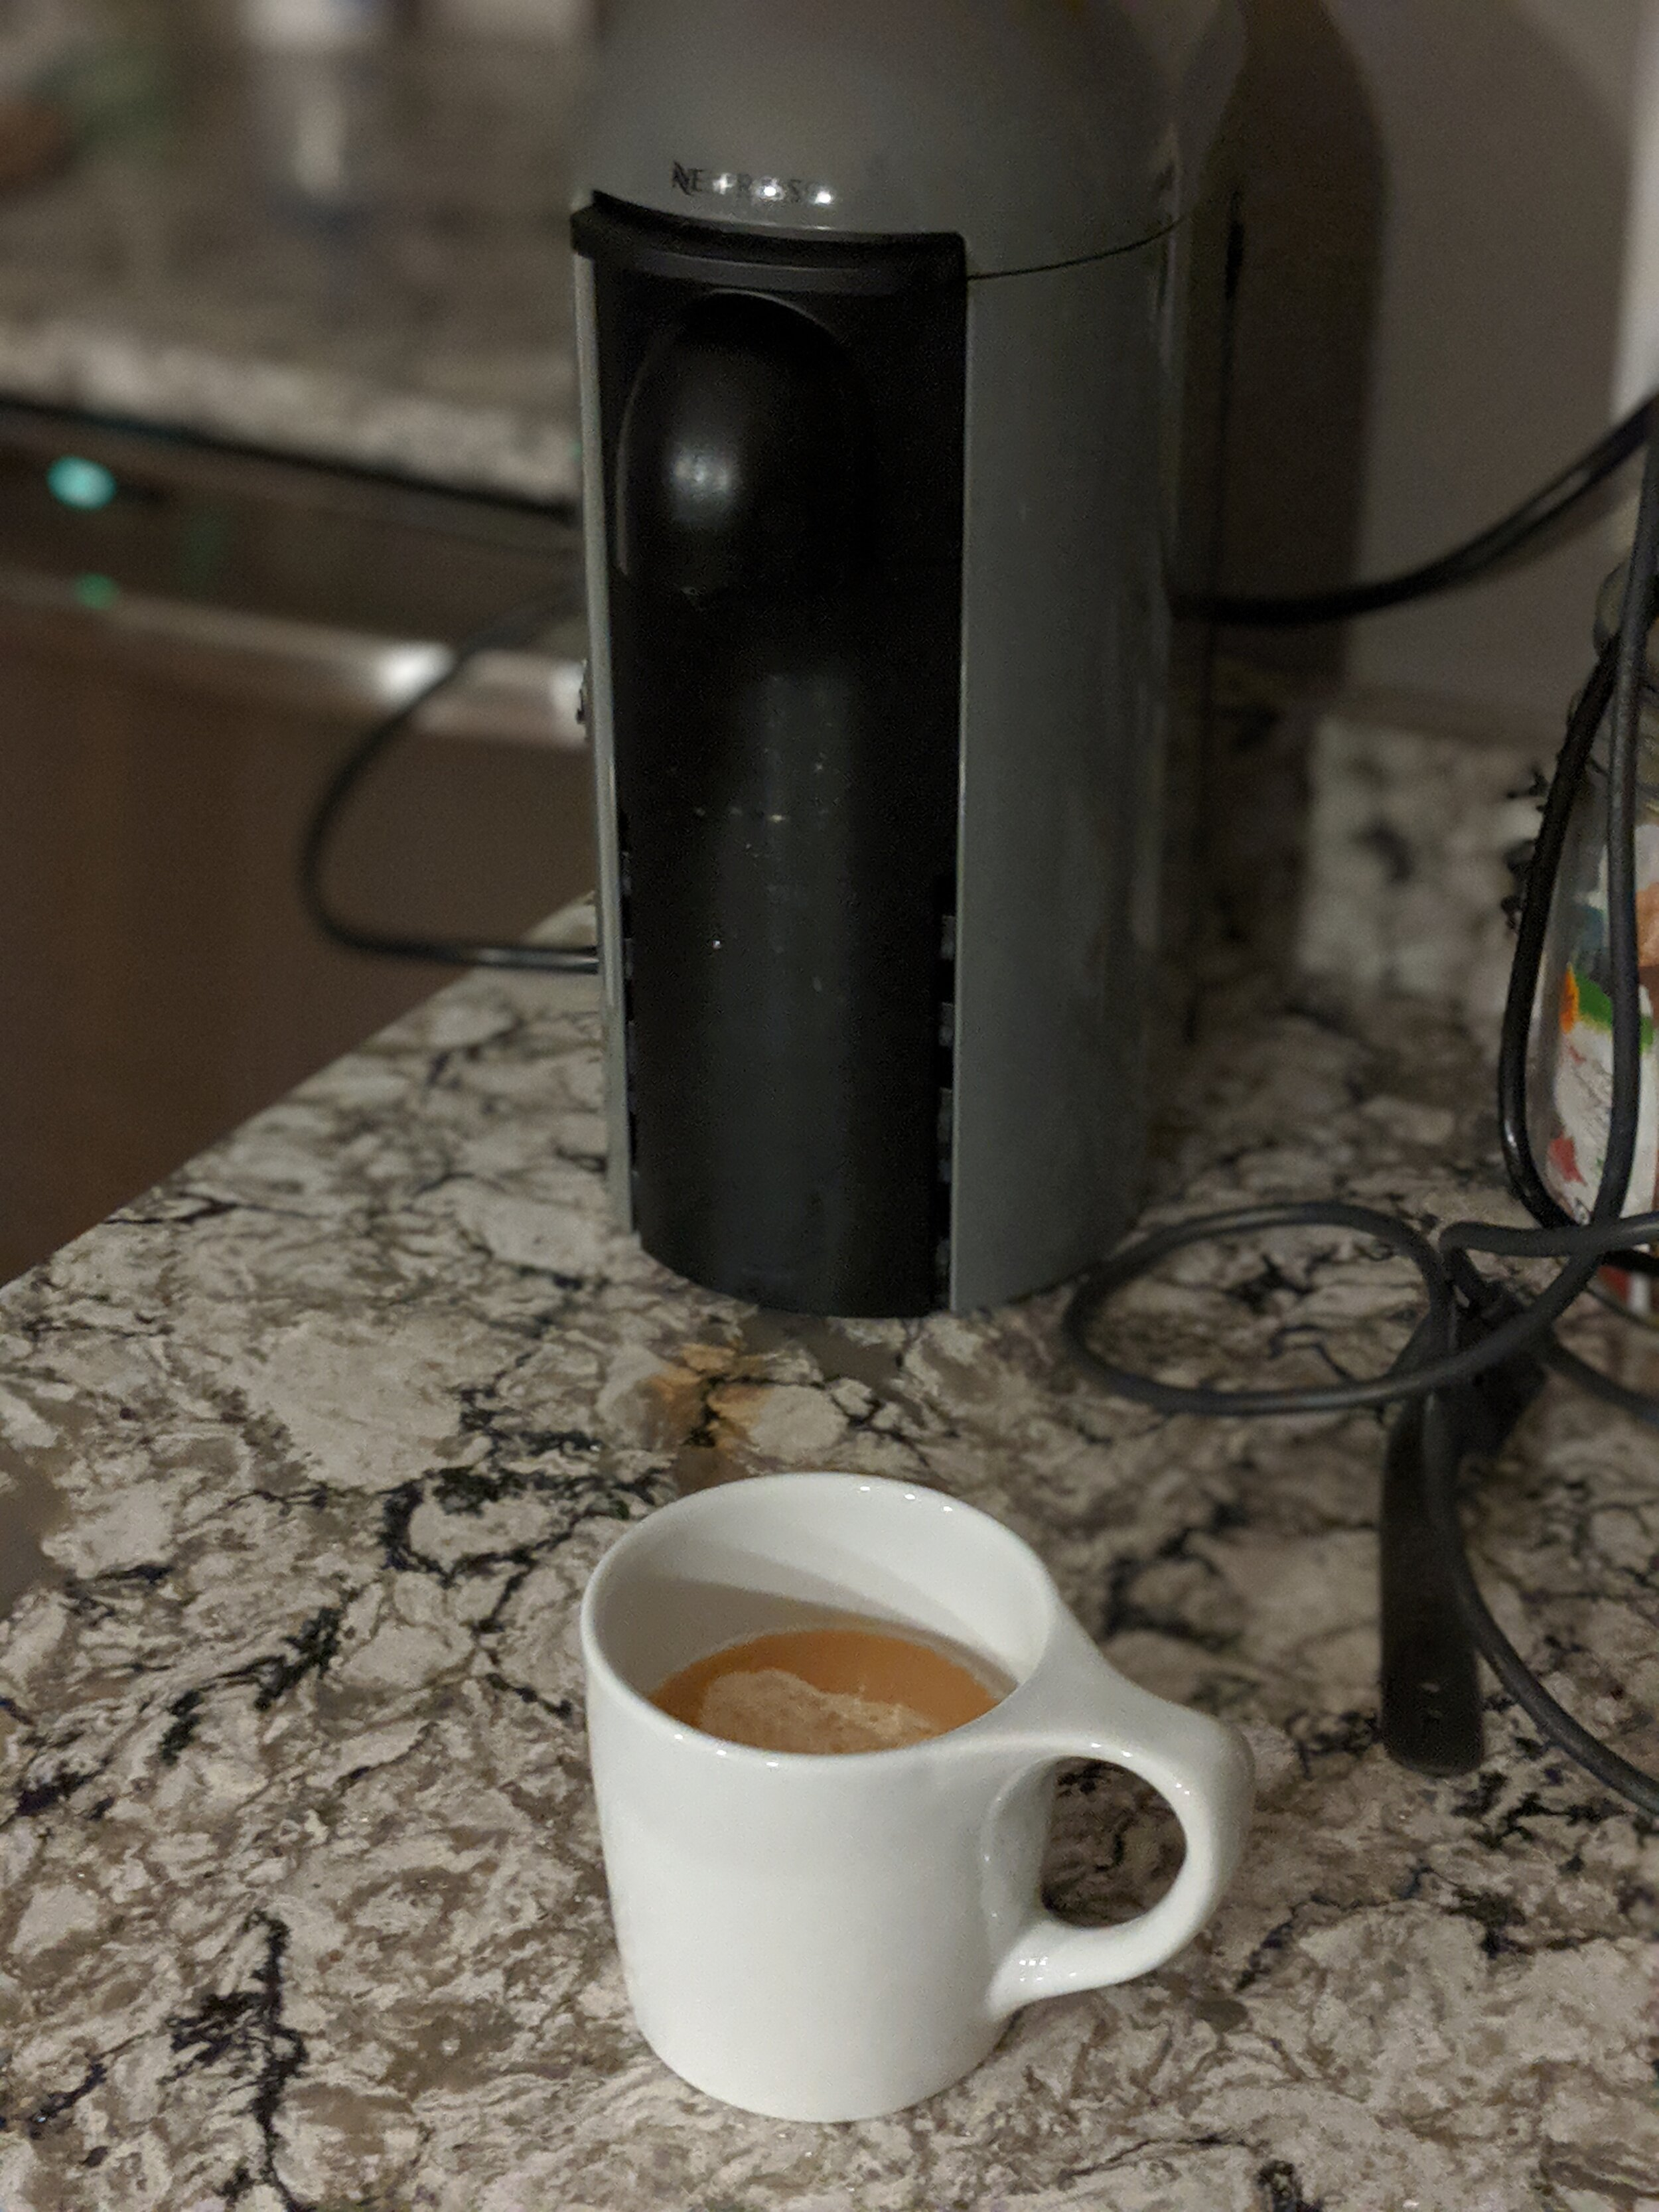 A lot of COFFEE was made through this little machine.